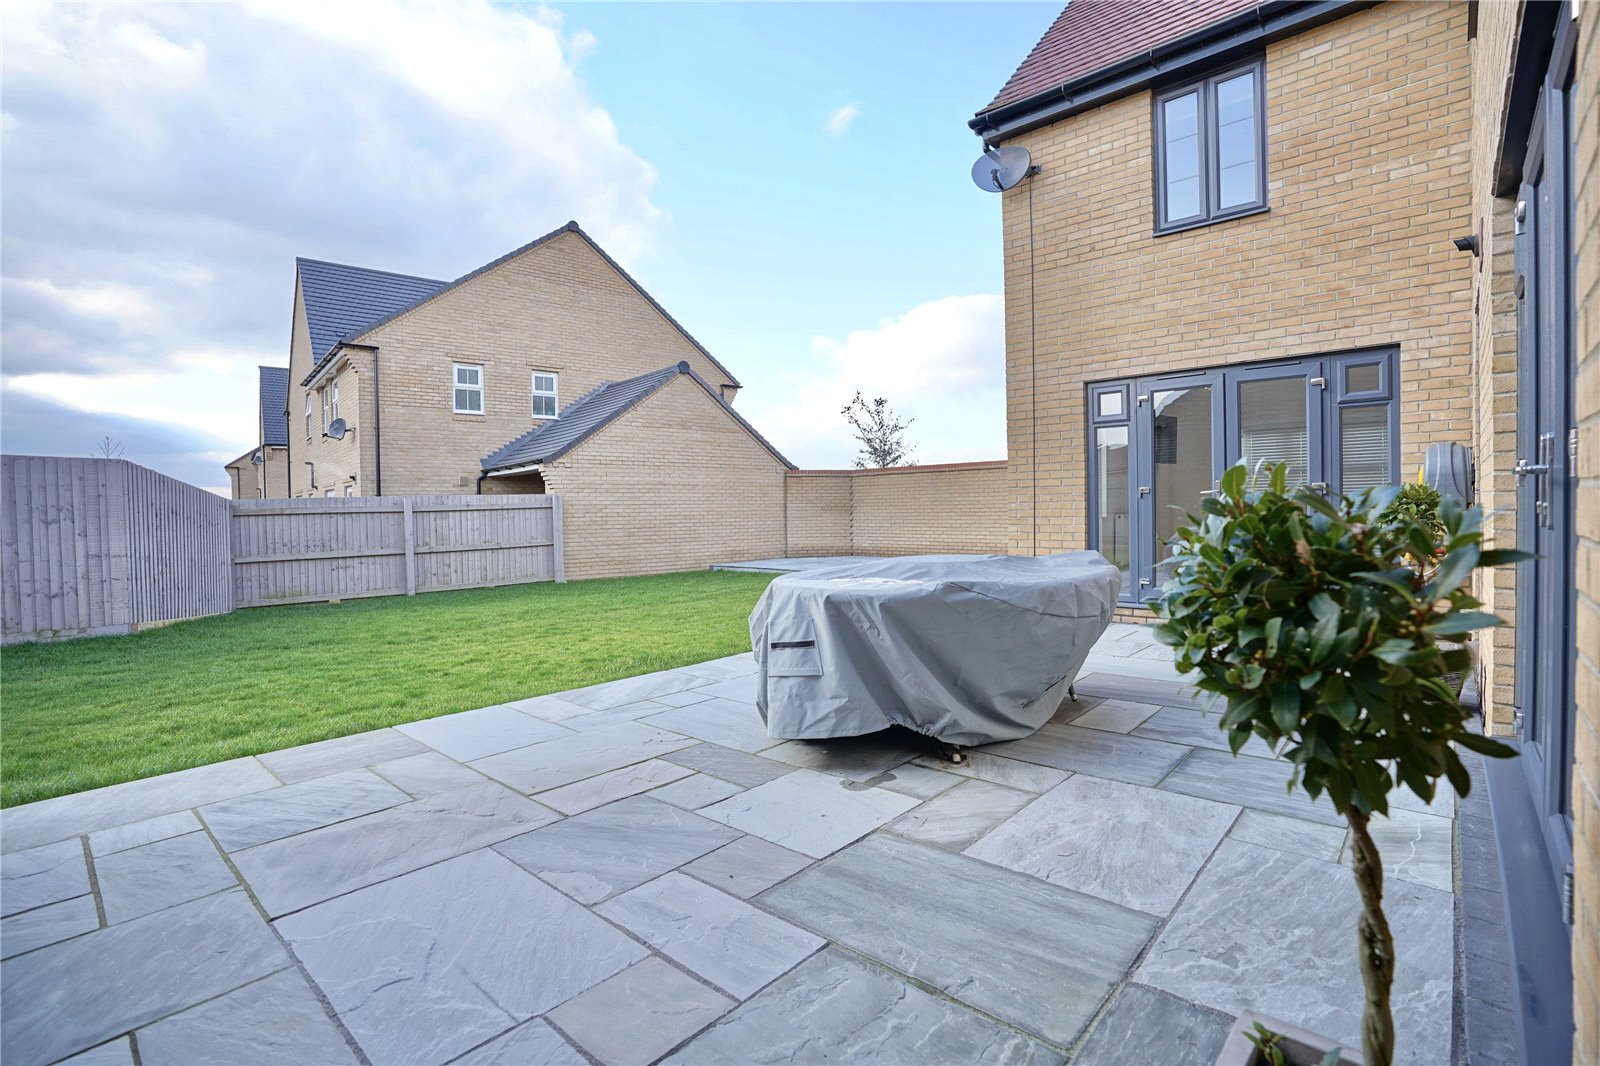 5 bed house for sale in Godmanchester, PE29 2NG  - Property Image 21